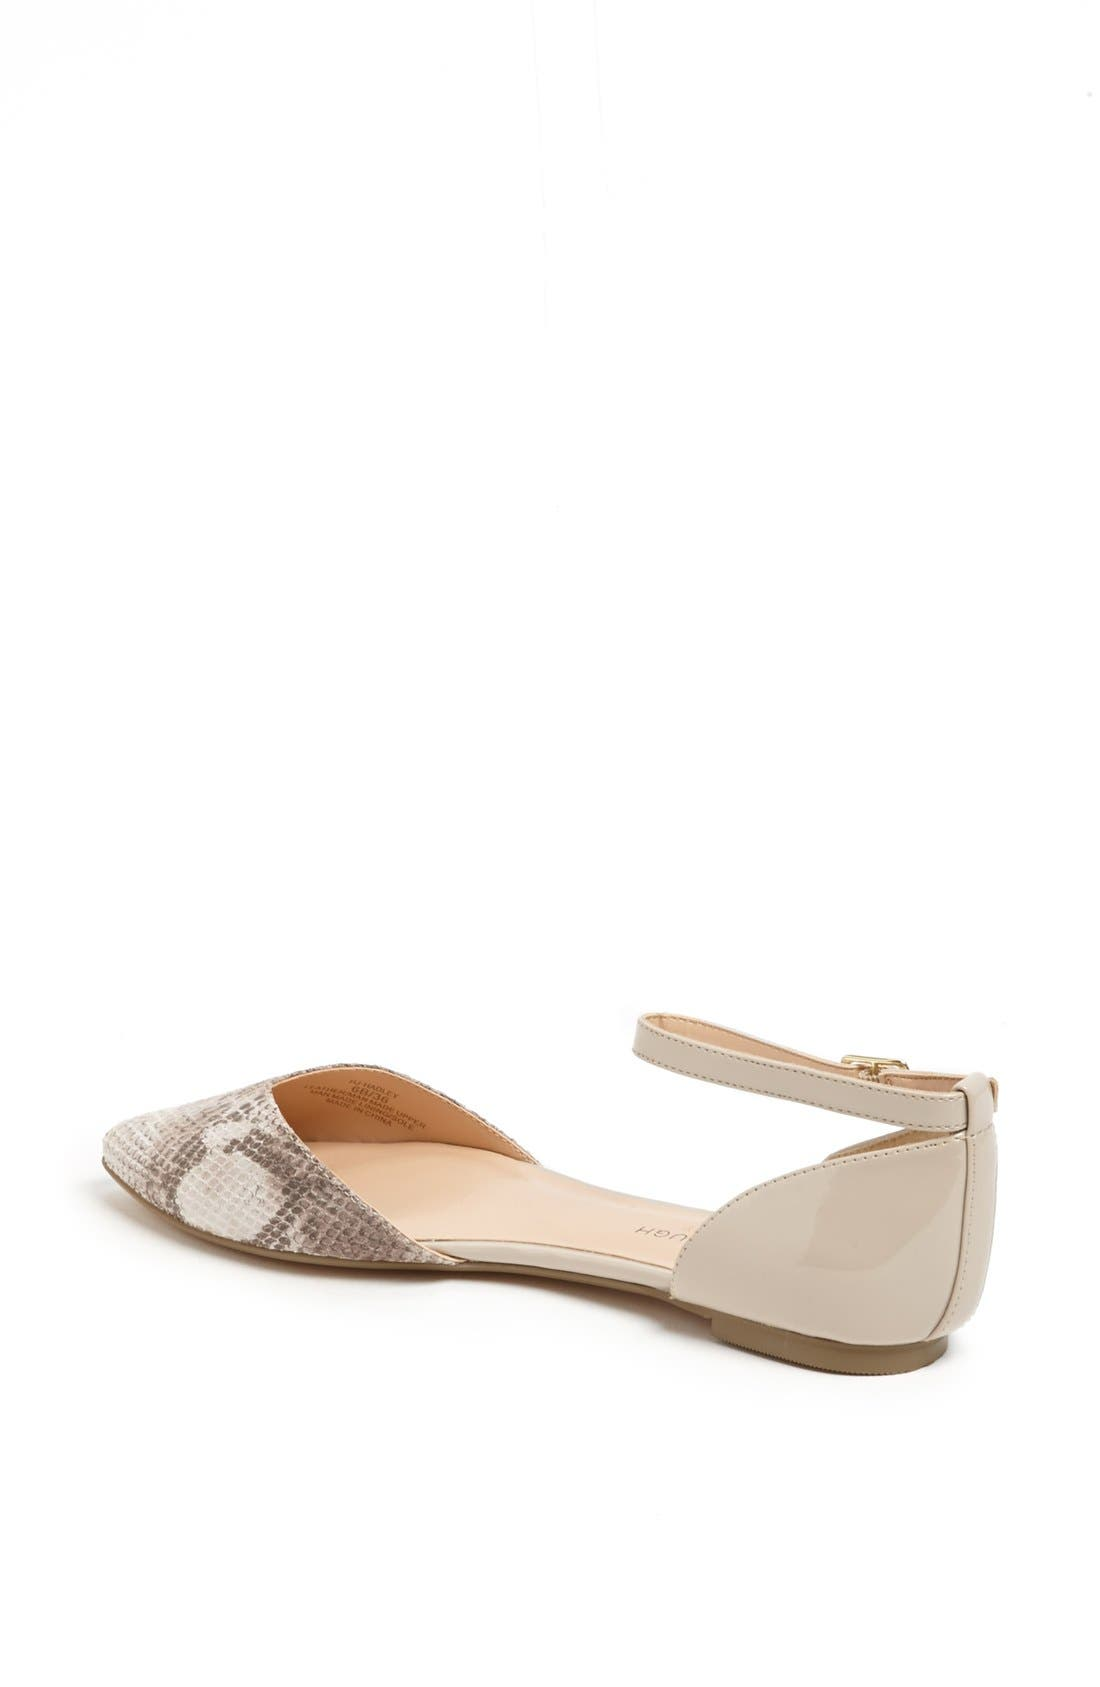 Alternate Image 2  - Sole Society 'Hadley' Ankle Strap Pointy Toe Flat